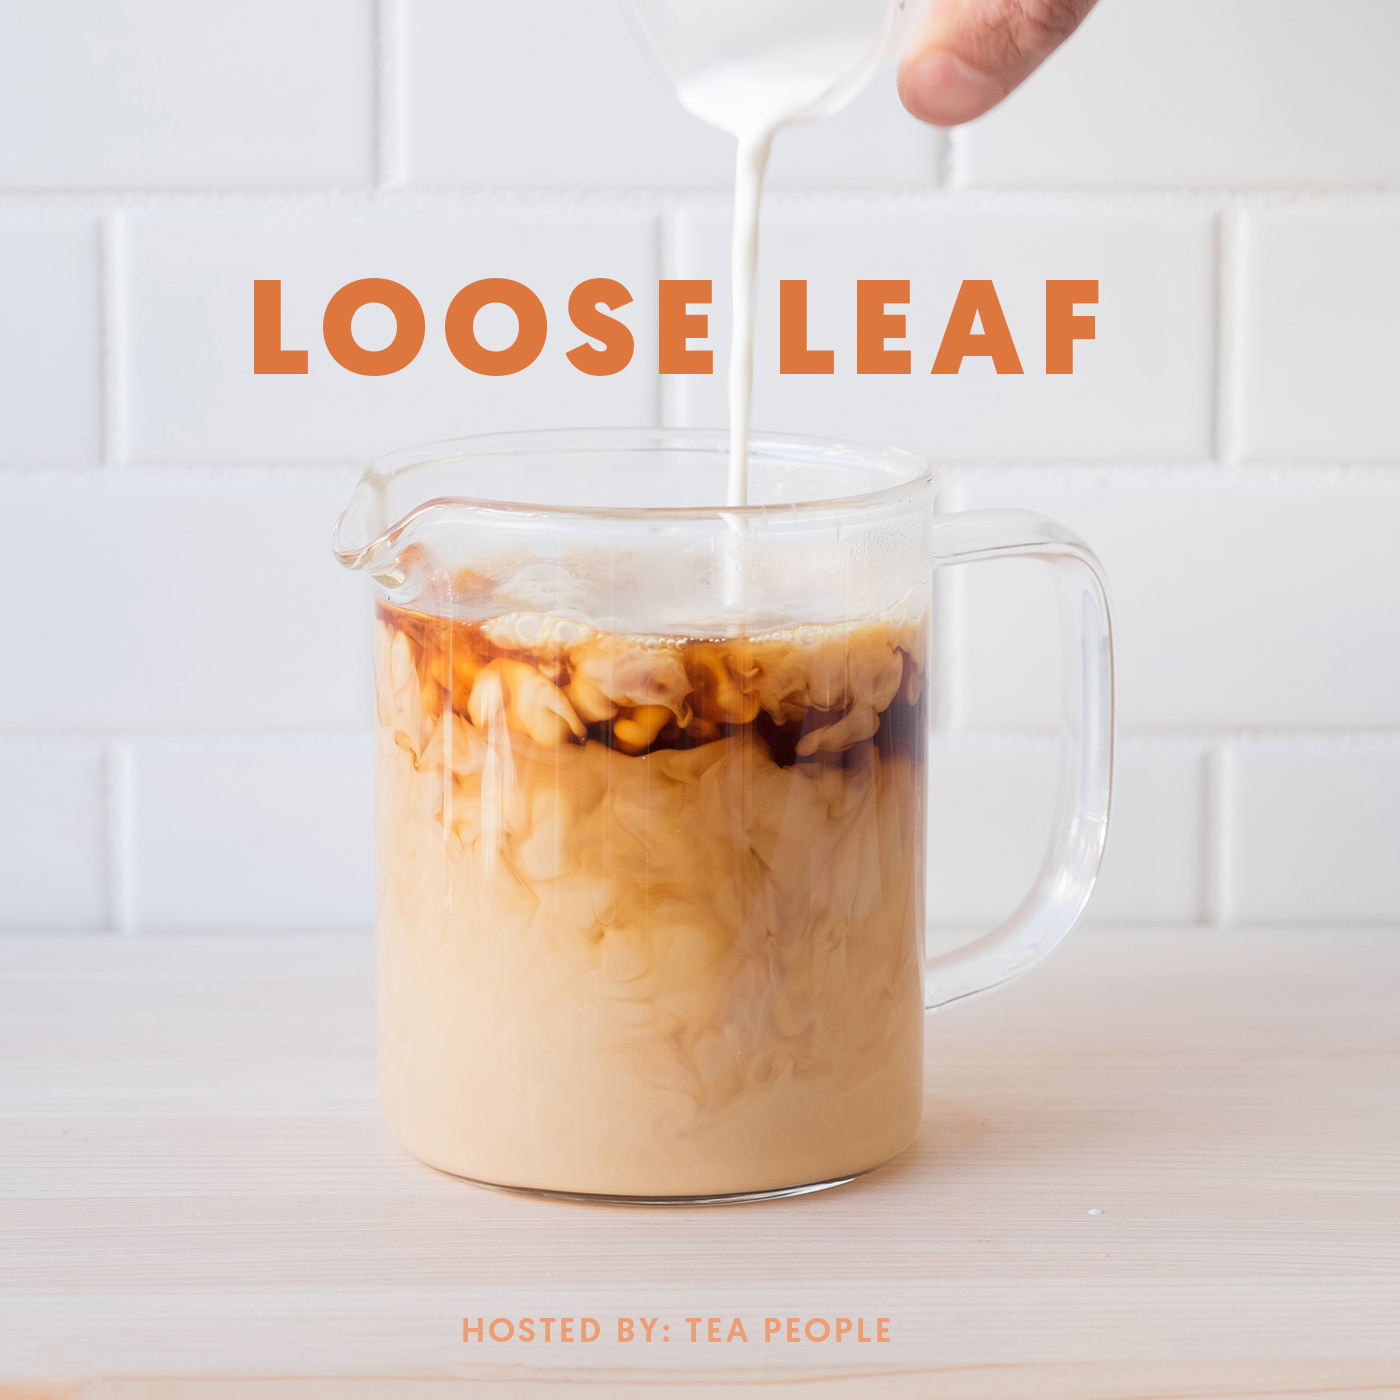 Loose Leaf Podcast - Tea People